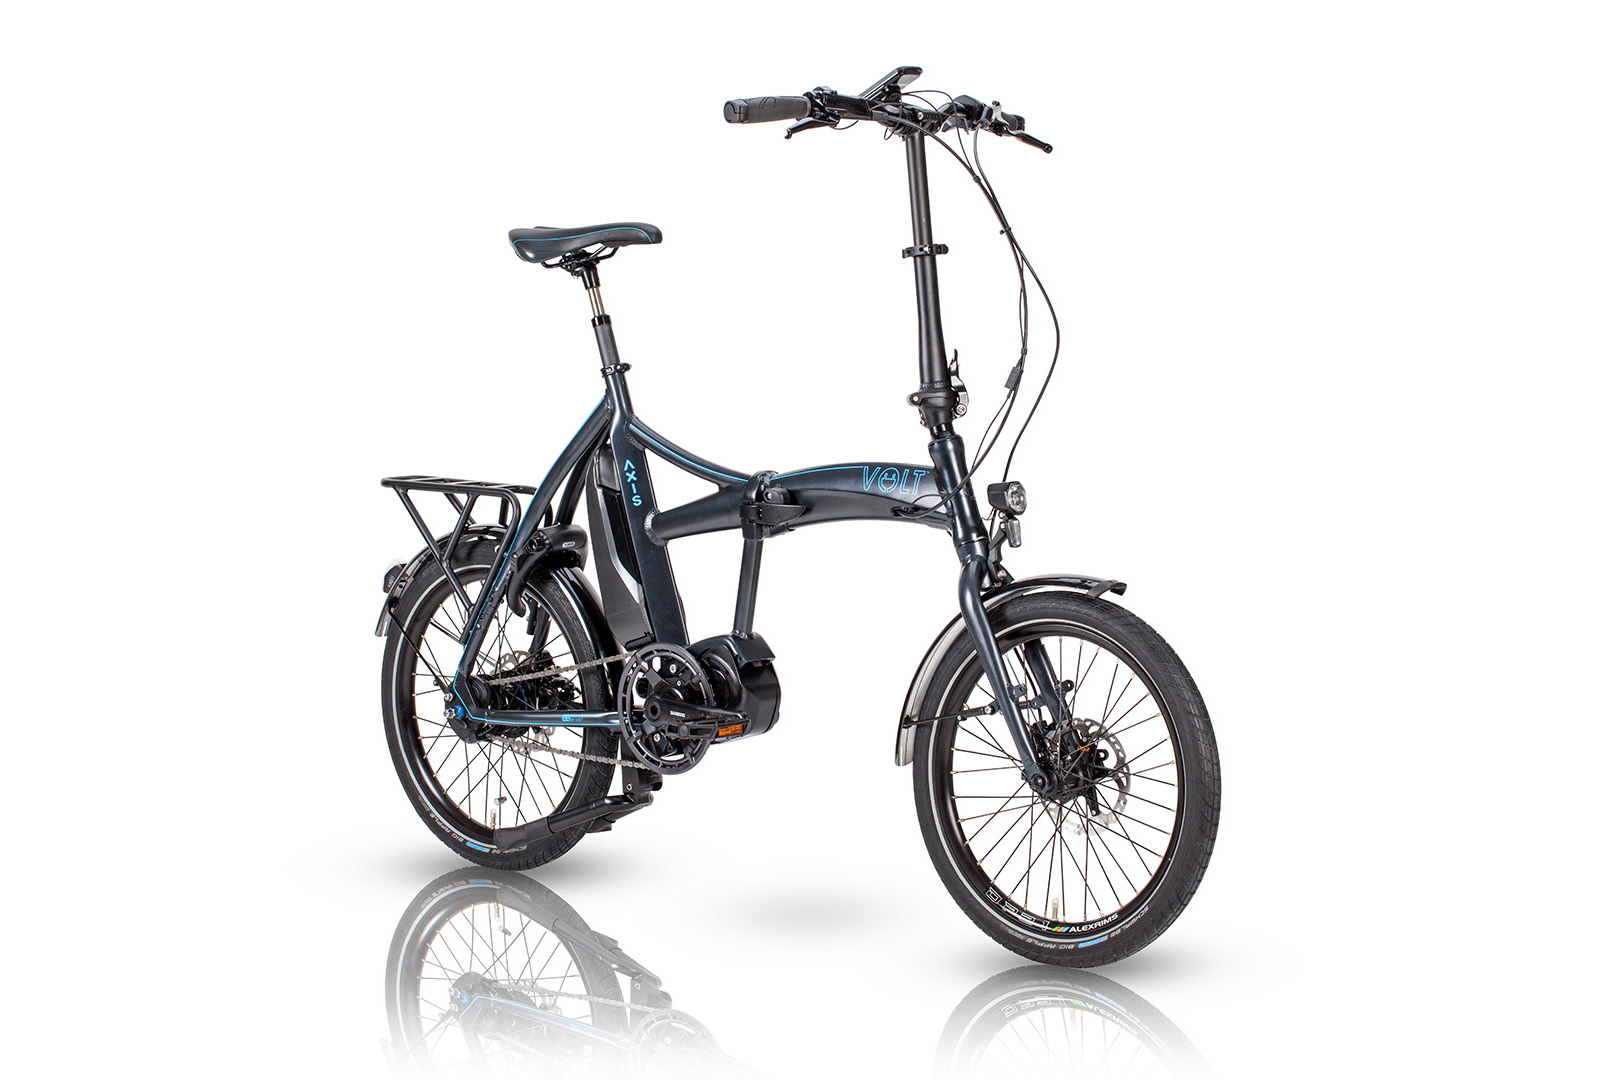 Axis Folding Shimano STEPS e-bike from VOLT™